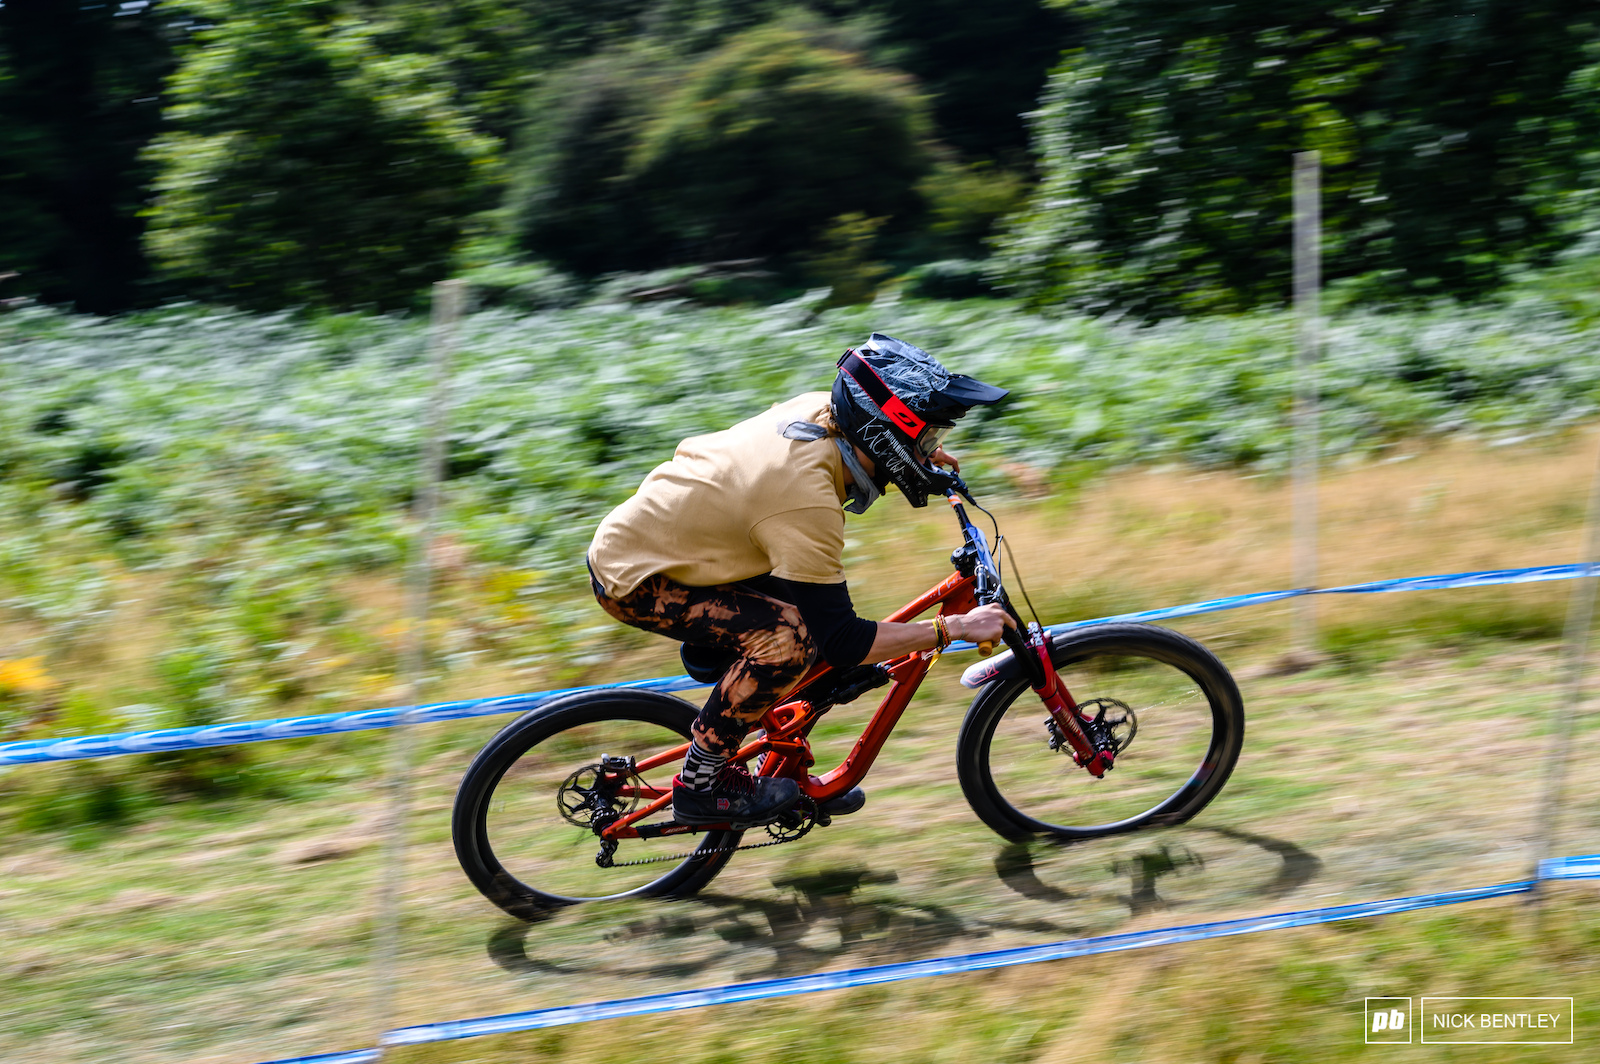 The upper section of the track was flat out and open leading to some highspeed high risk riding from the quick riders